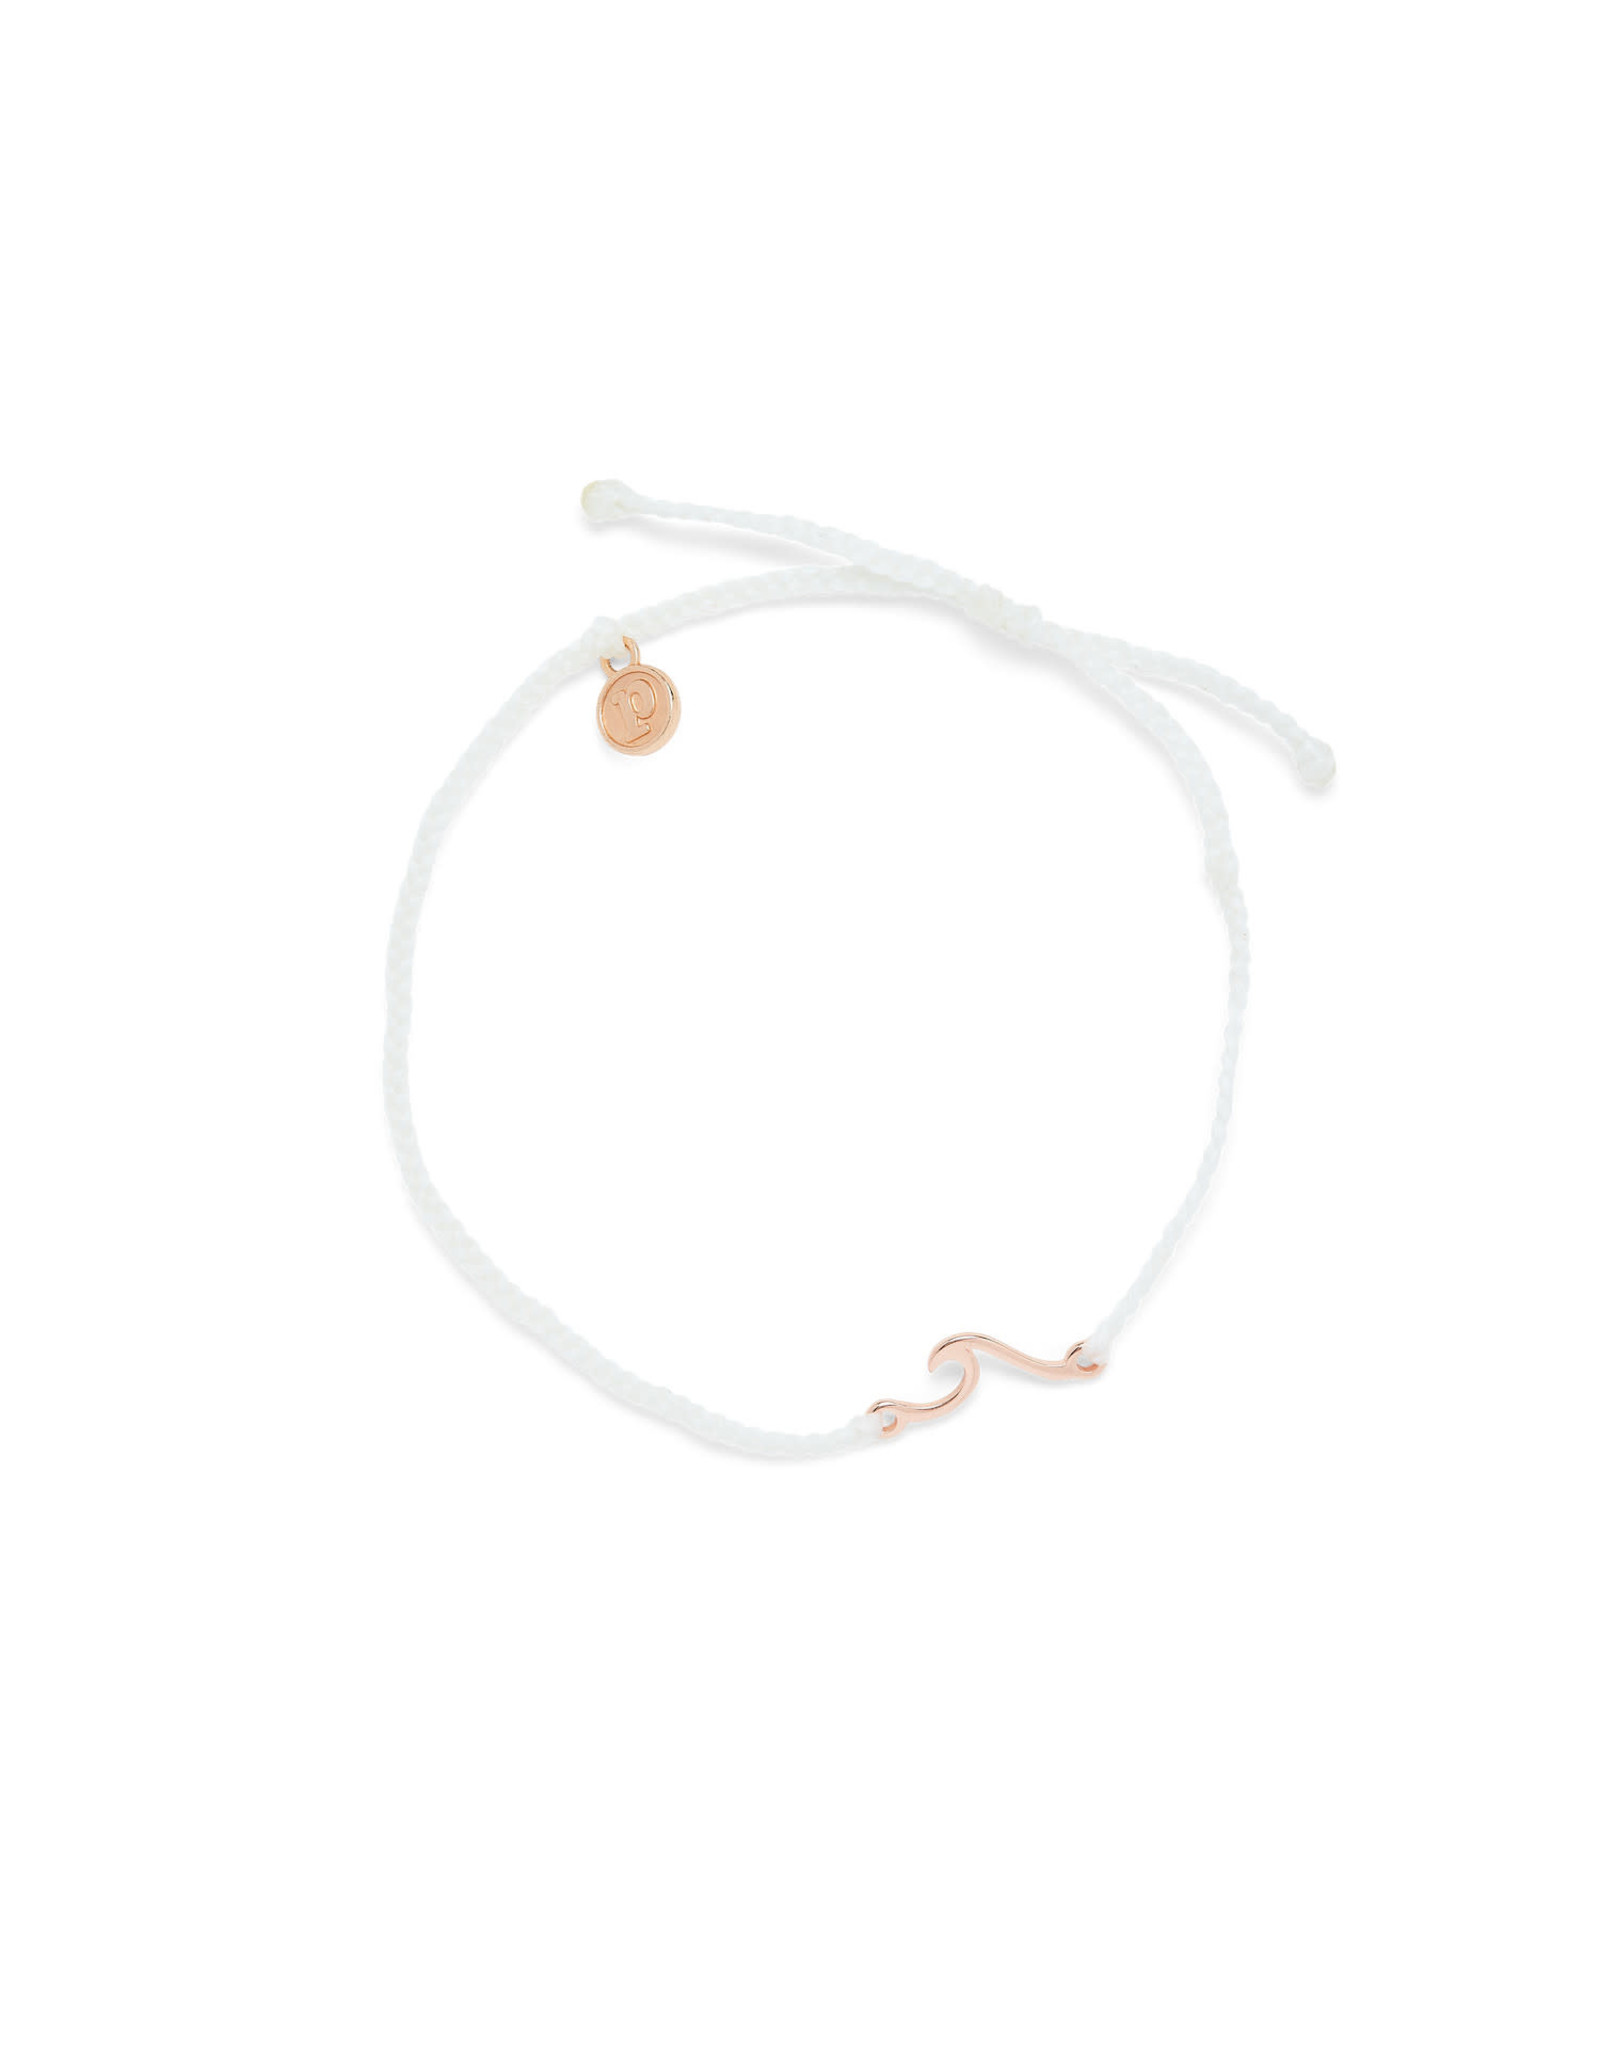 PURA VIDA ANKLET MINI WAVE ROSE GOLD WHITE